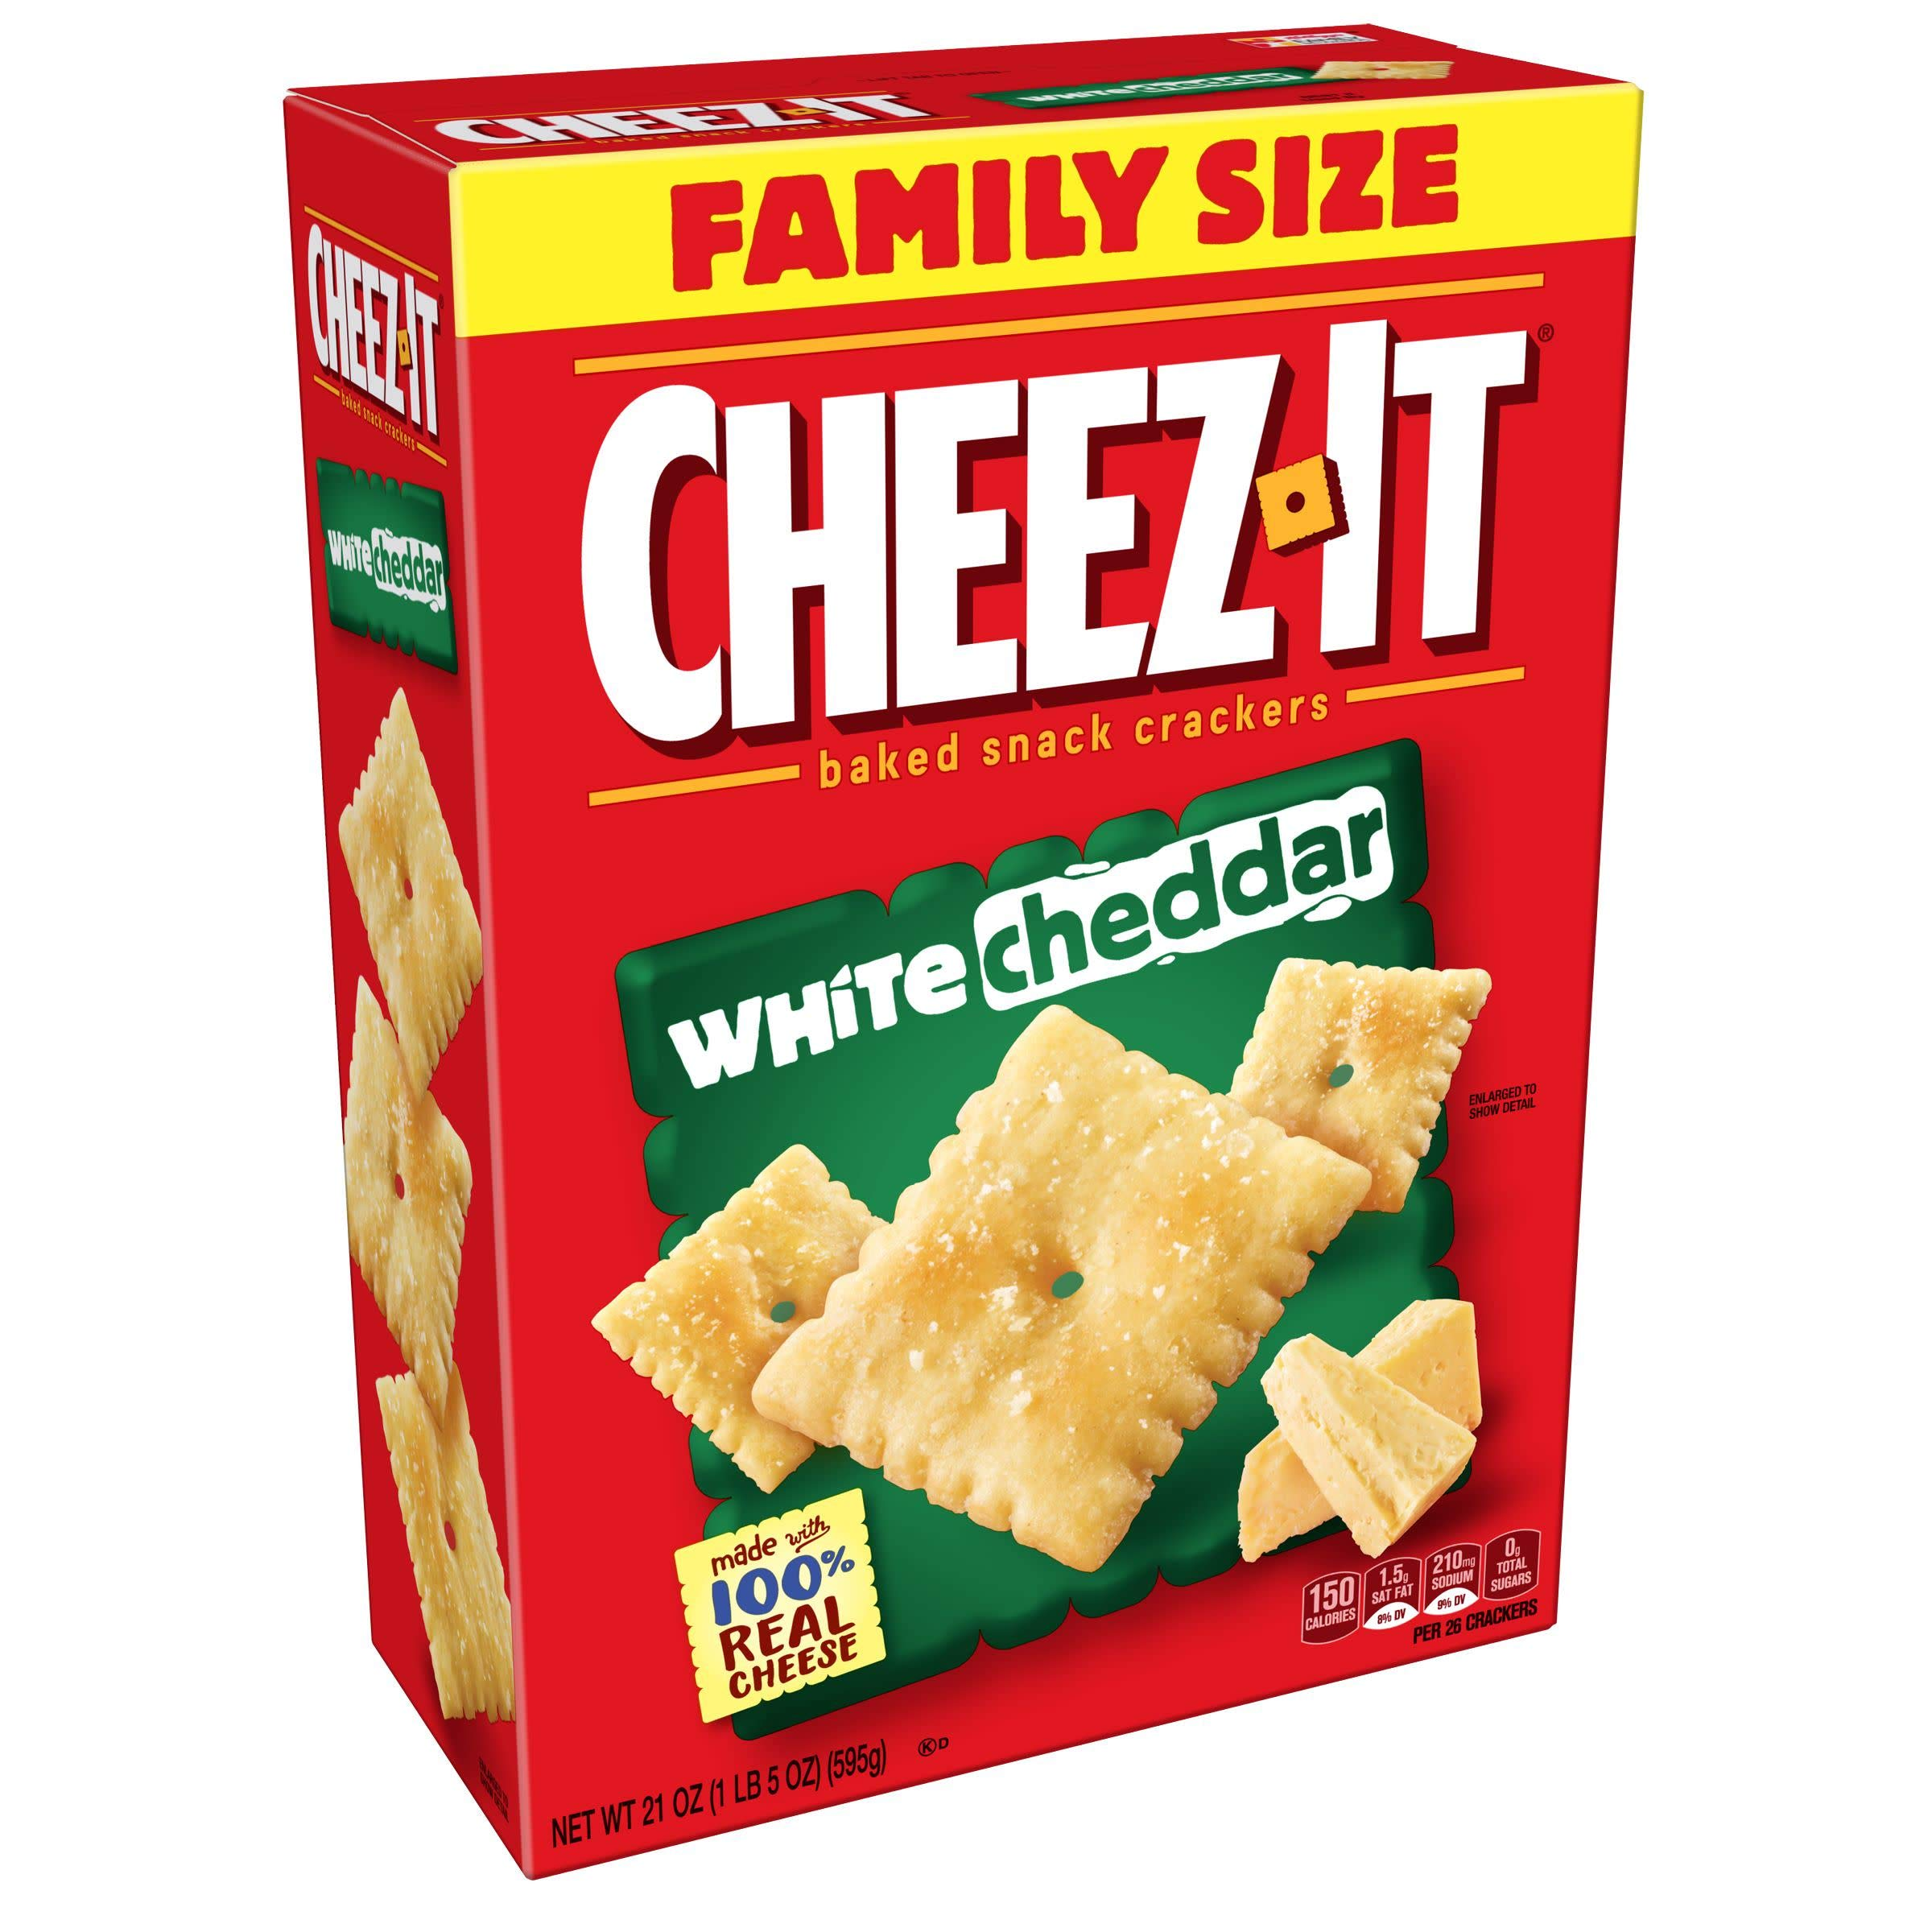 Cheez-It Baked Snack Cheese Crackers, White Cheddar, Family Size, 21 oz Box by Cheez-It